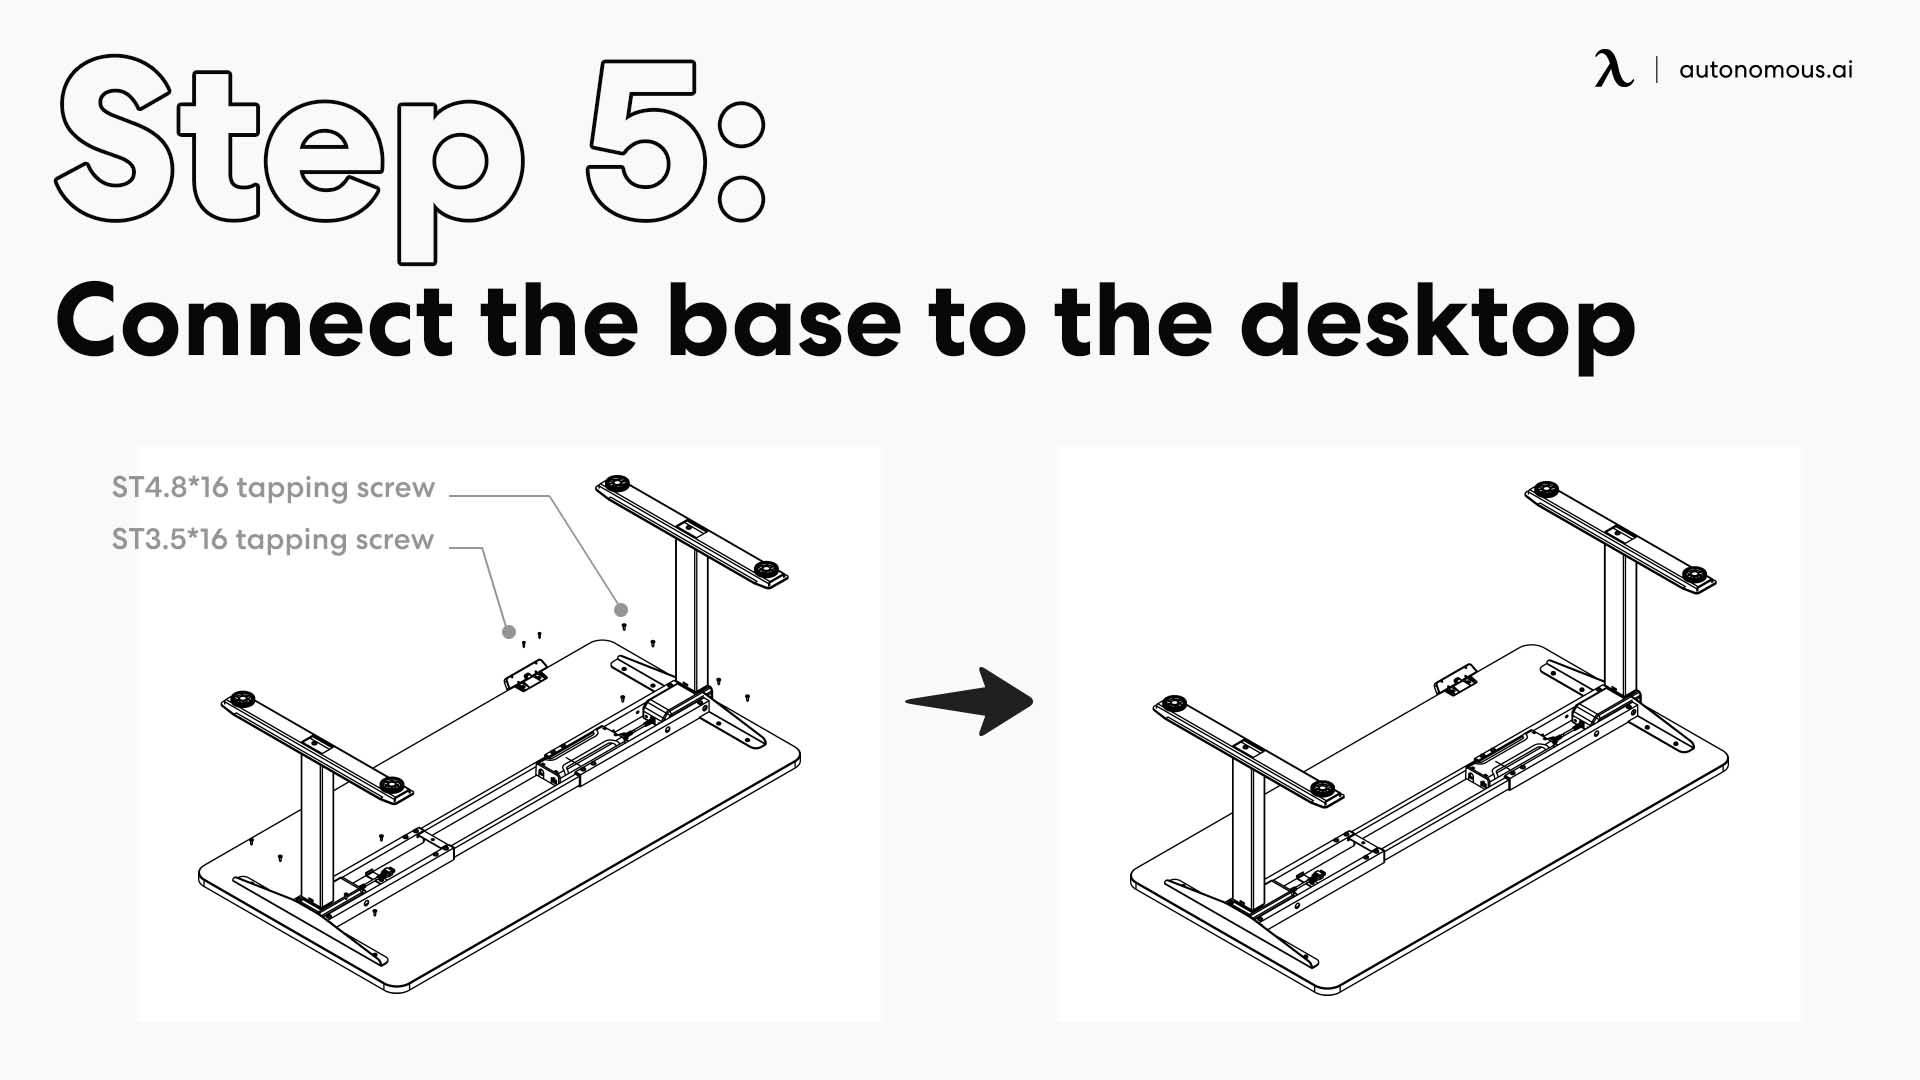 Connect the base to the desktop